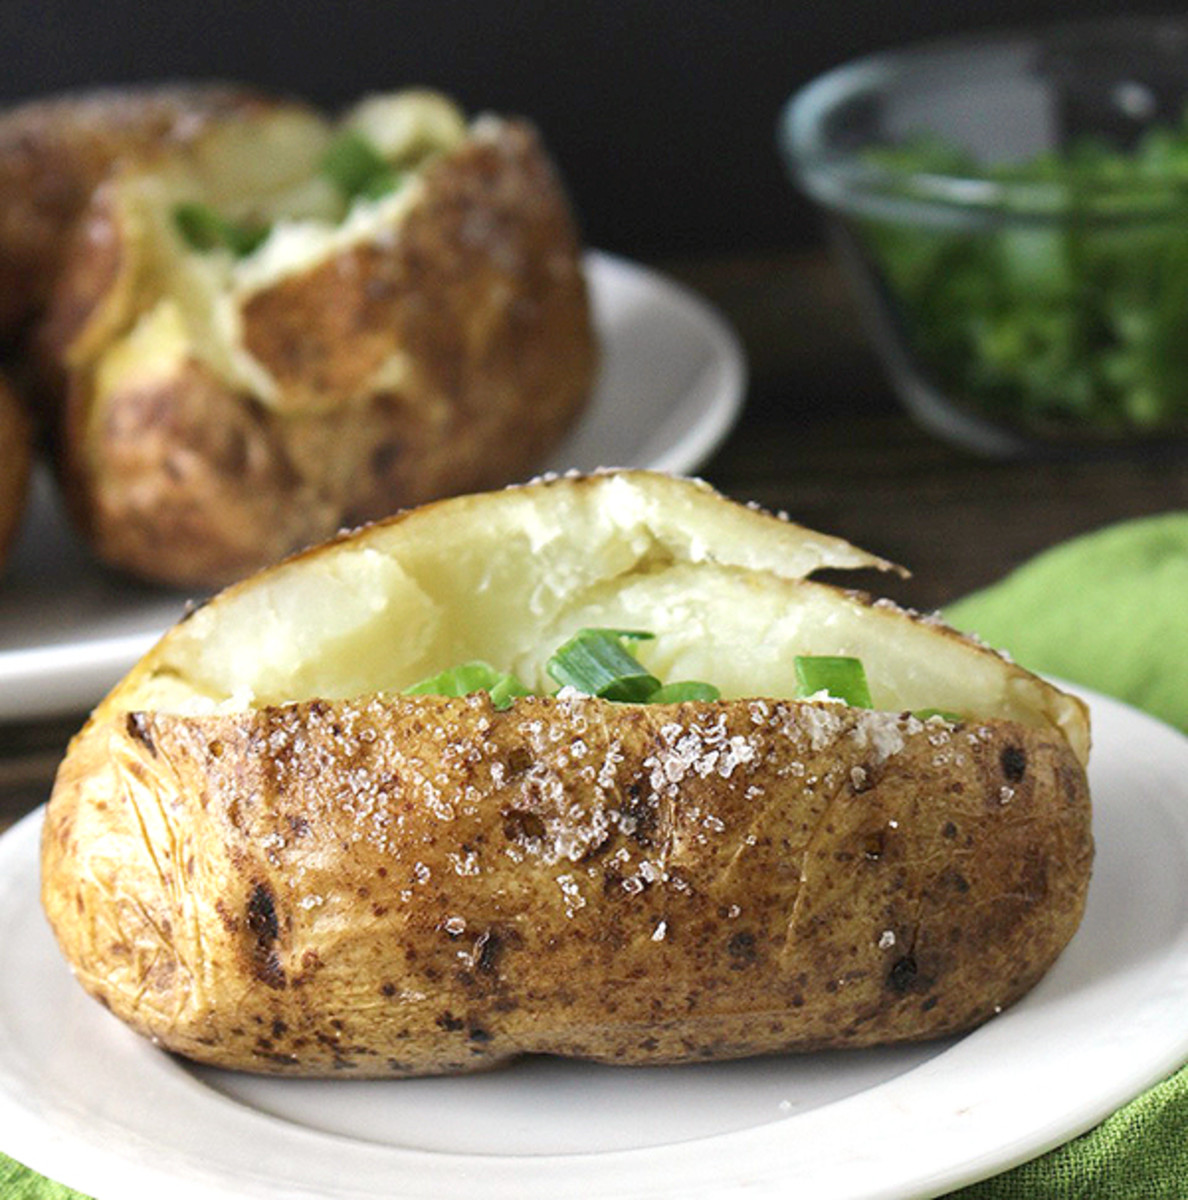 15 Ways to Turn Your Baked Potato Into an Amazing Complete Meal